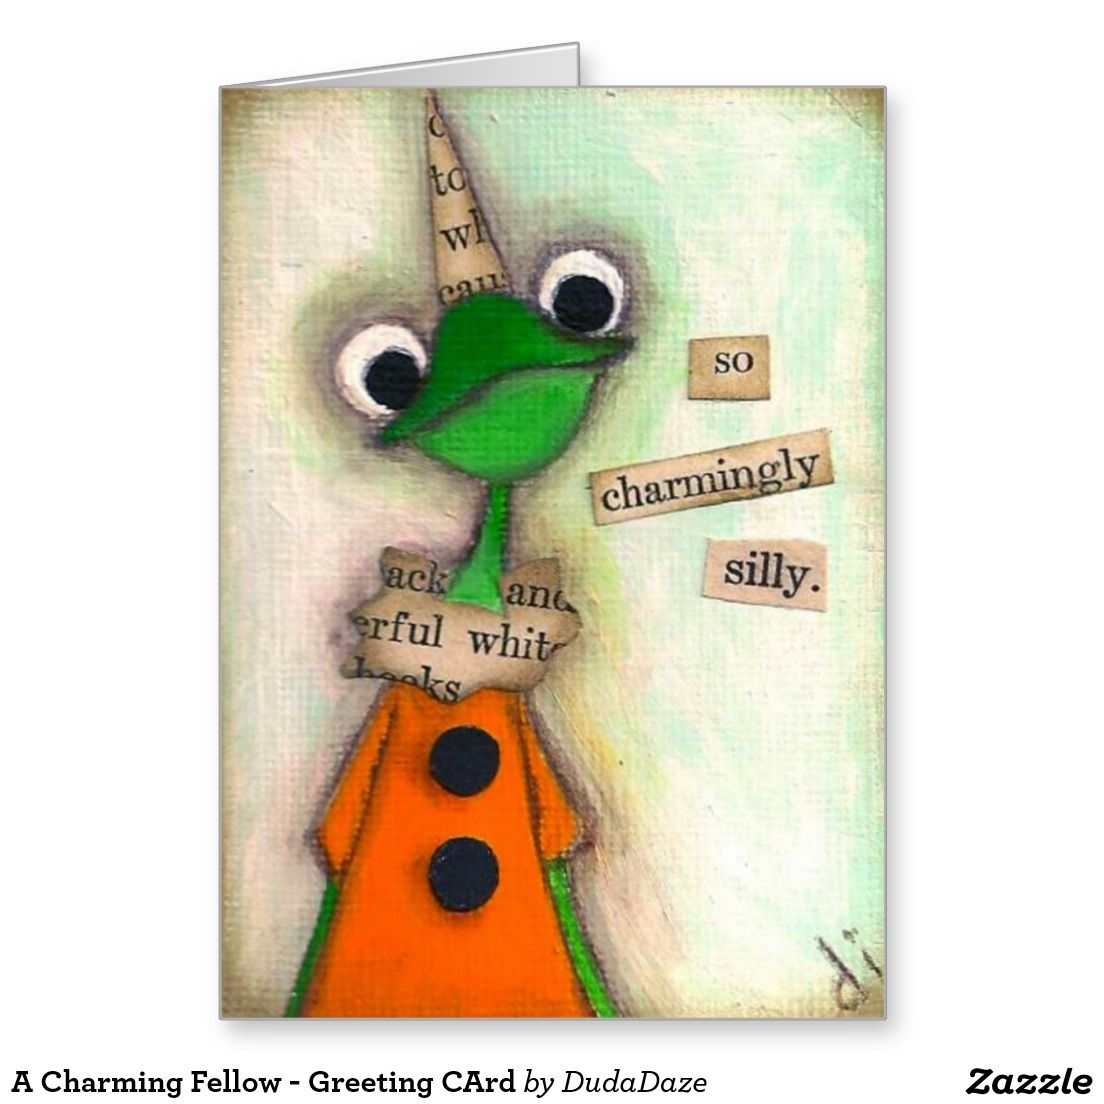 A Charming Fellow - Greeting CArd